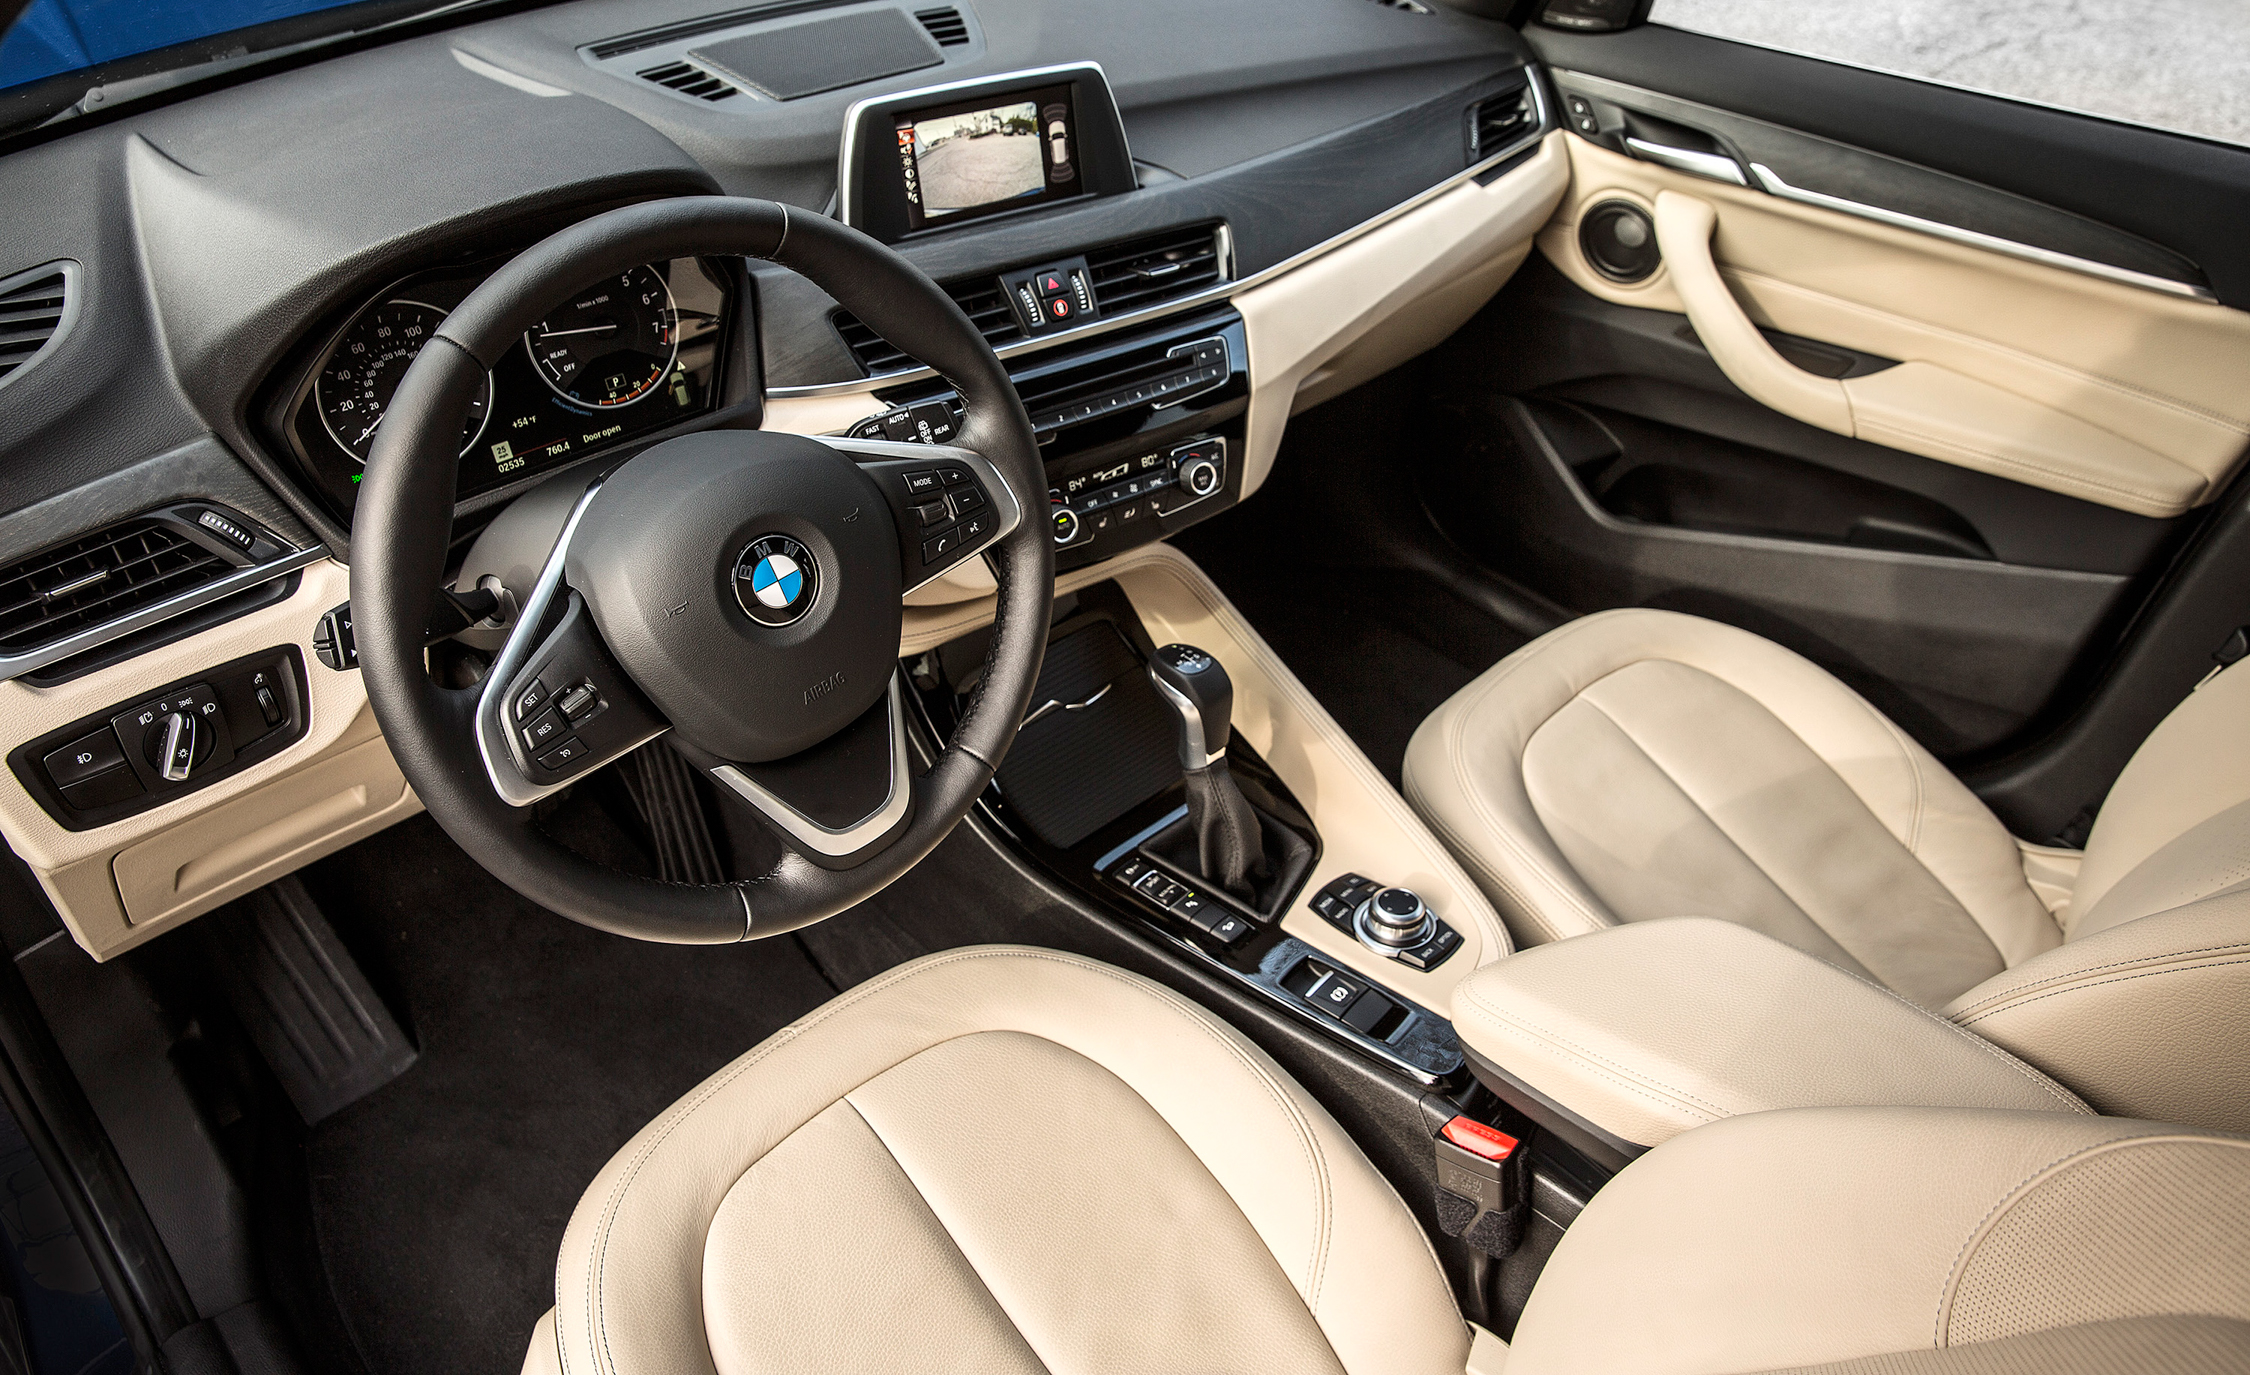 2016 BMW X1 Interior Driver Cockpit (View 18 of 36)